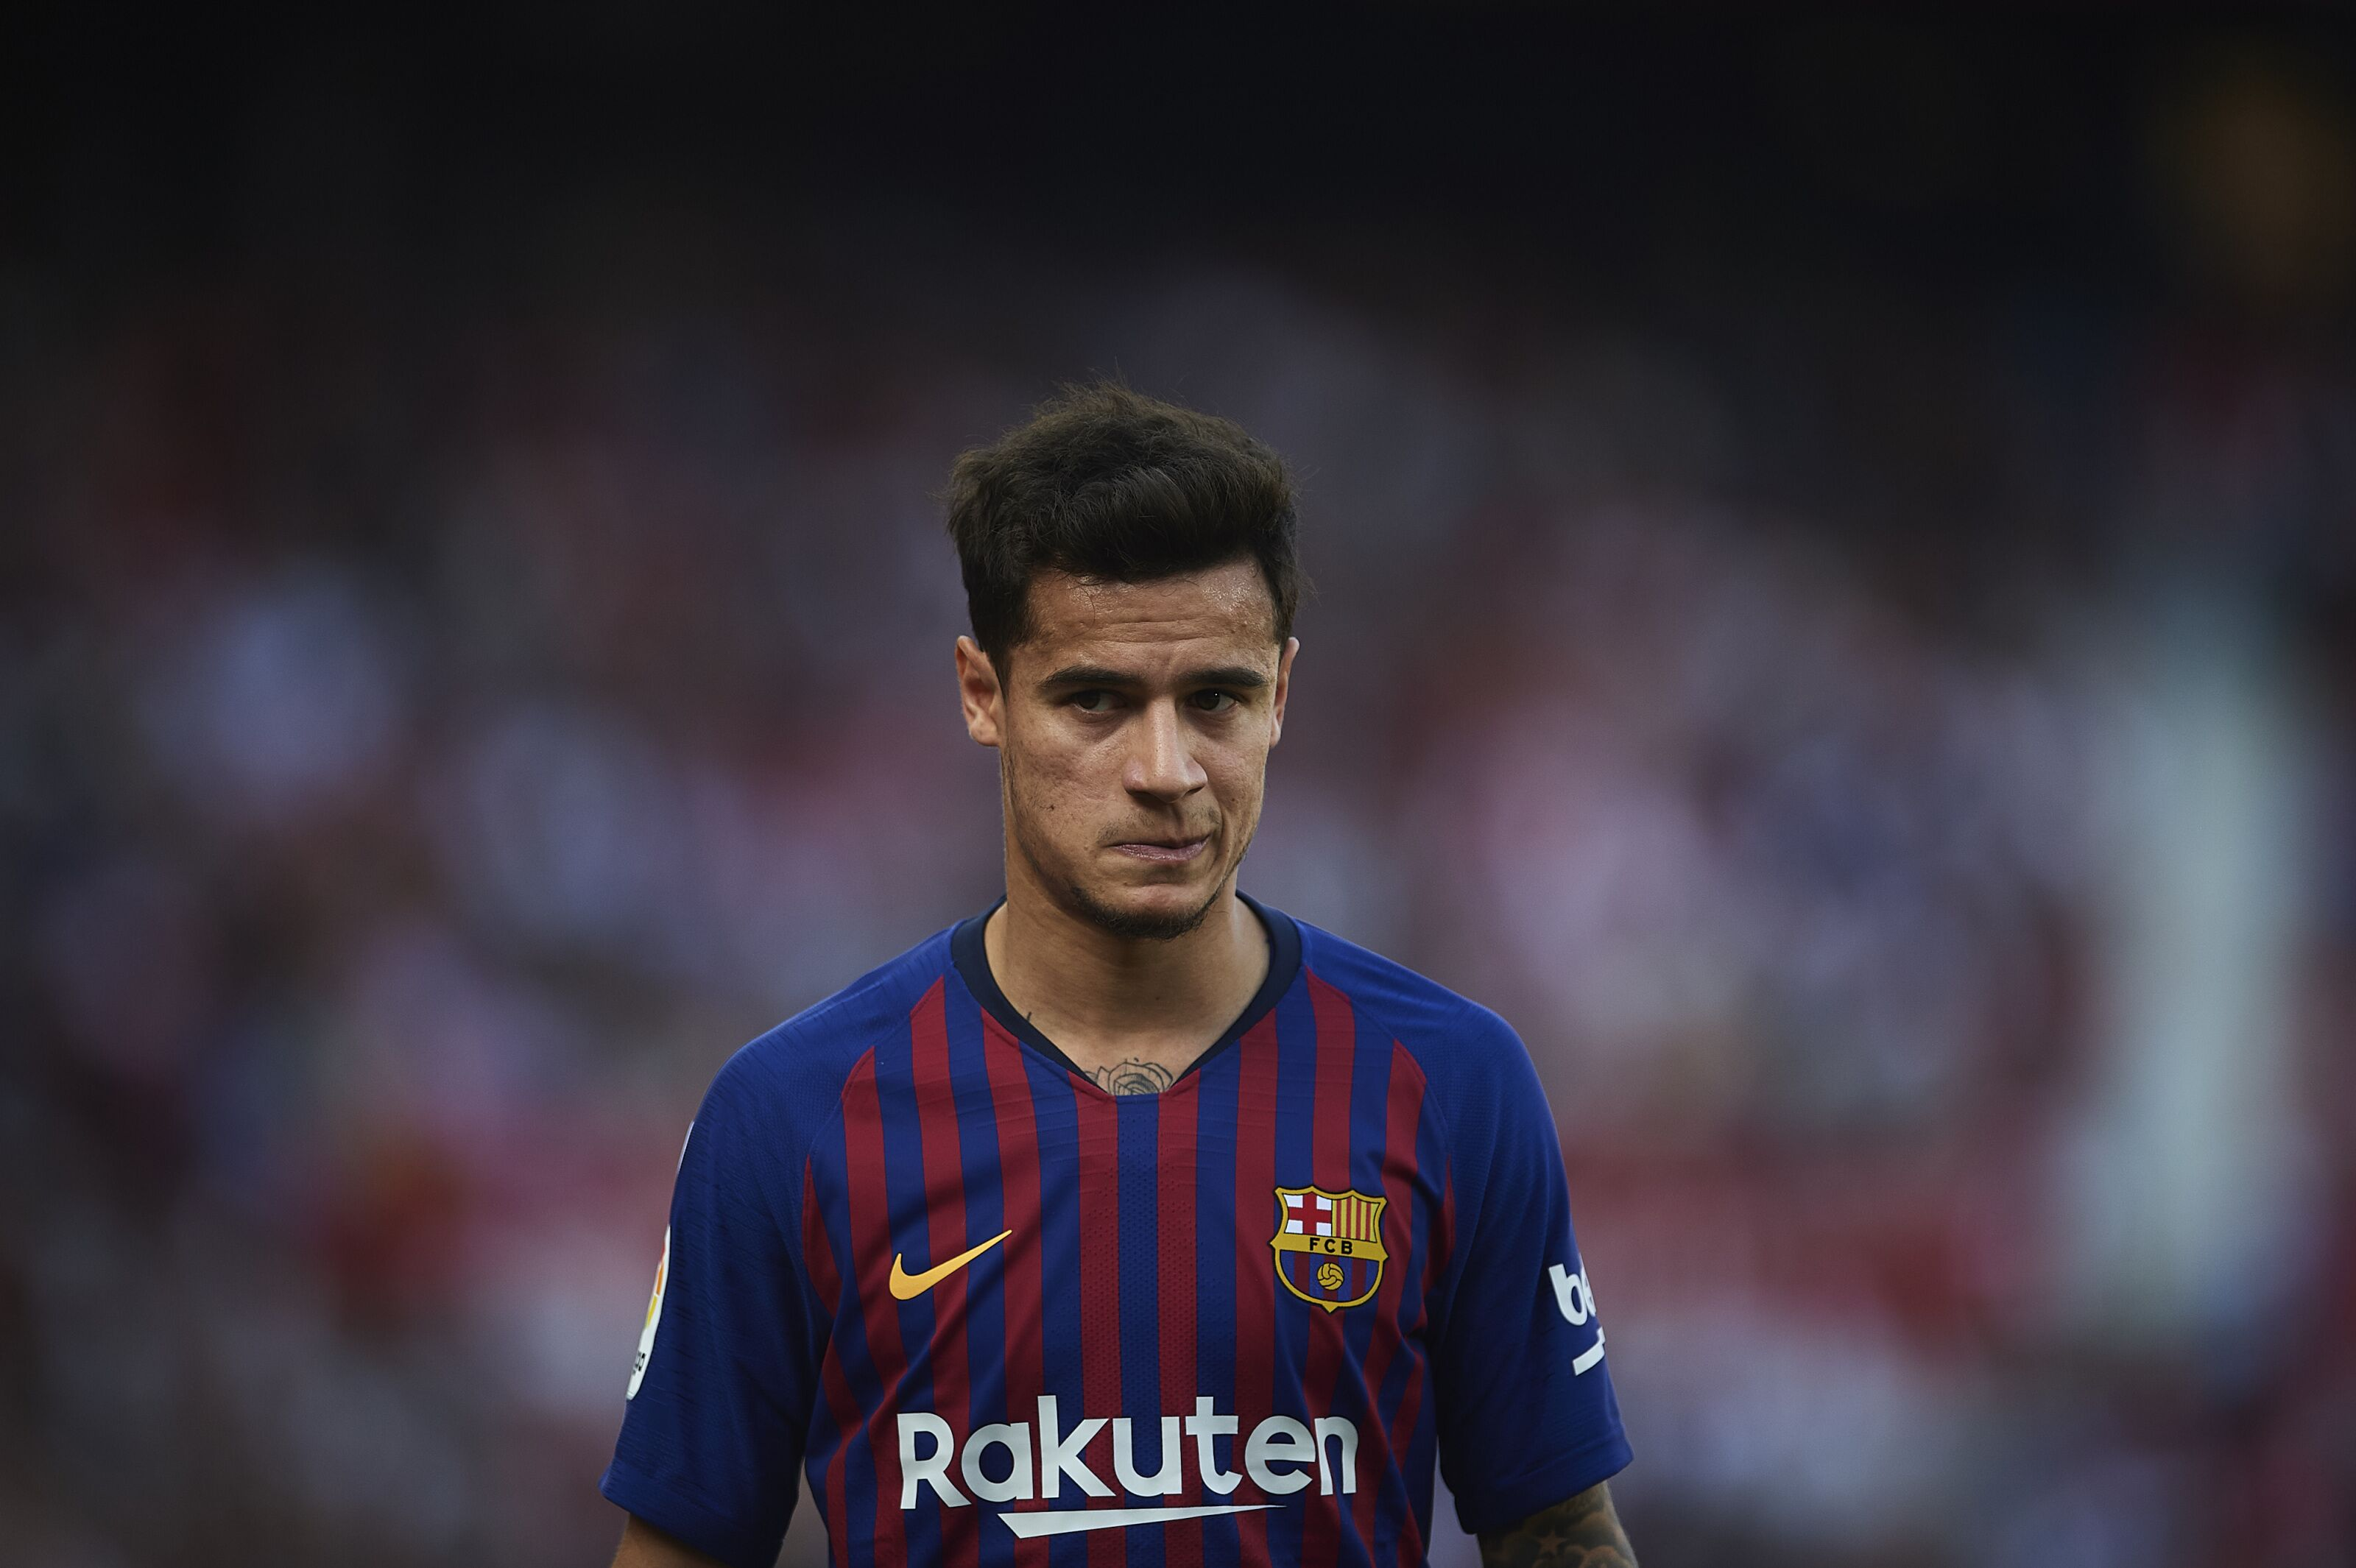 Barcelona: Is it to be a Philippe Coutinho and Liverpool reunion?